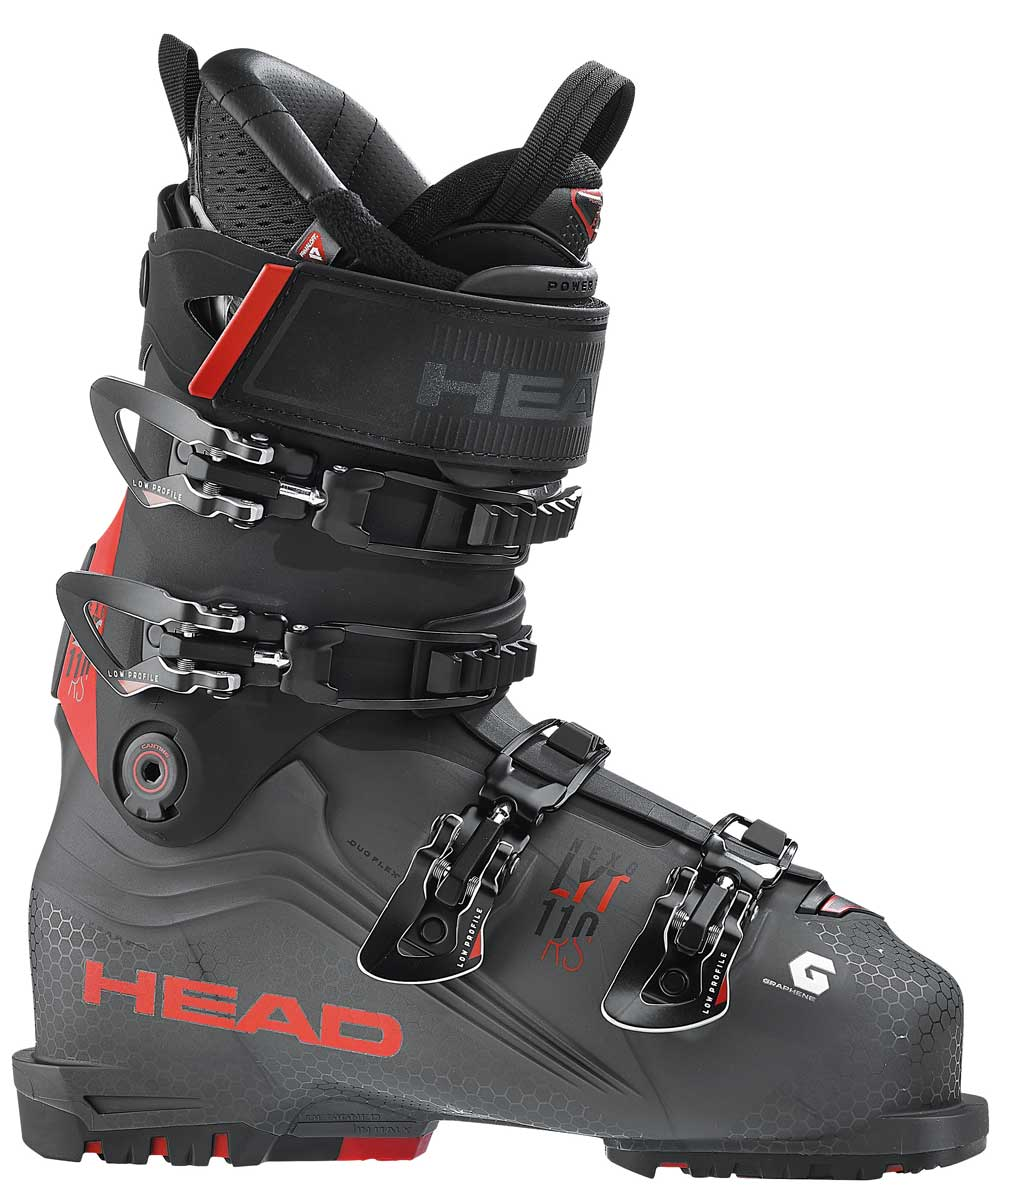 Head Nexo LYT 110 RS Ski Boot in Anthracite and Red